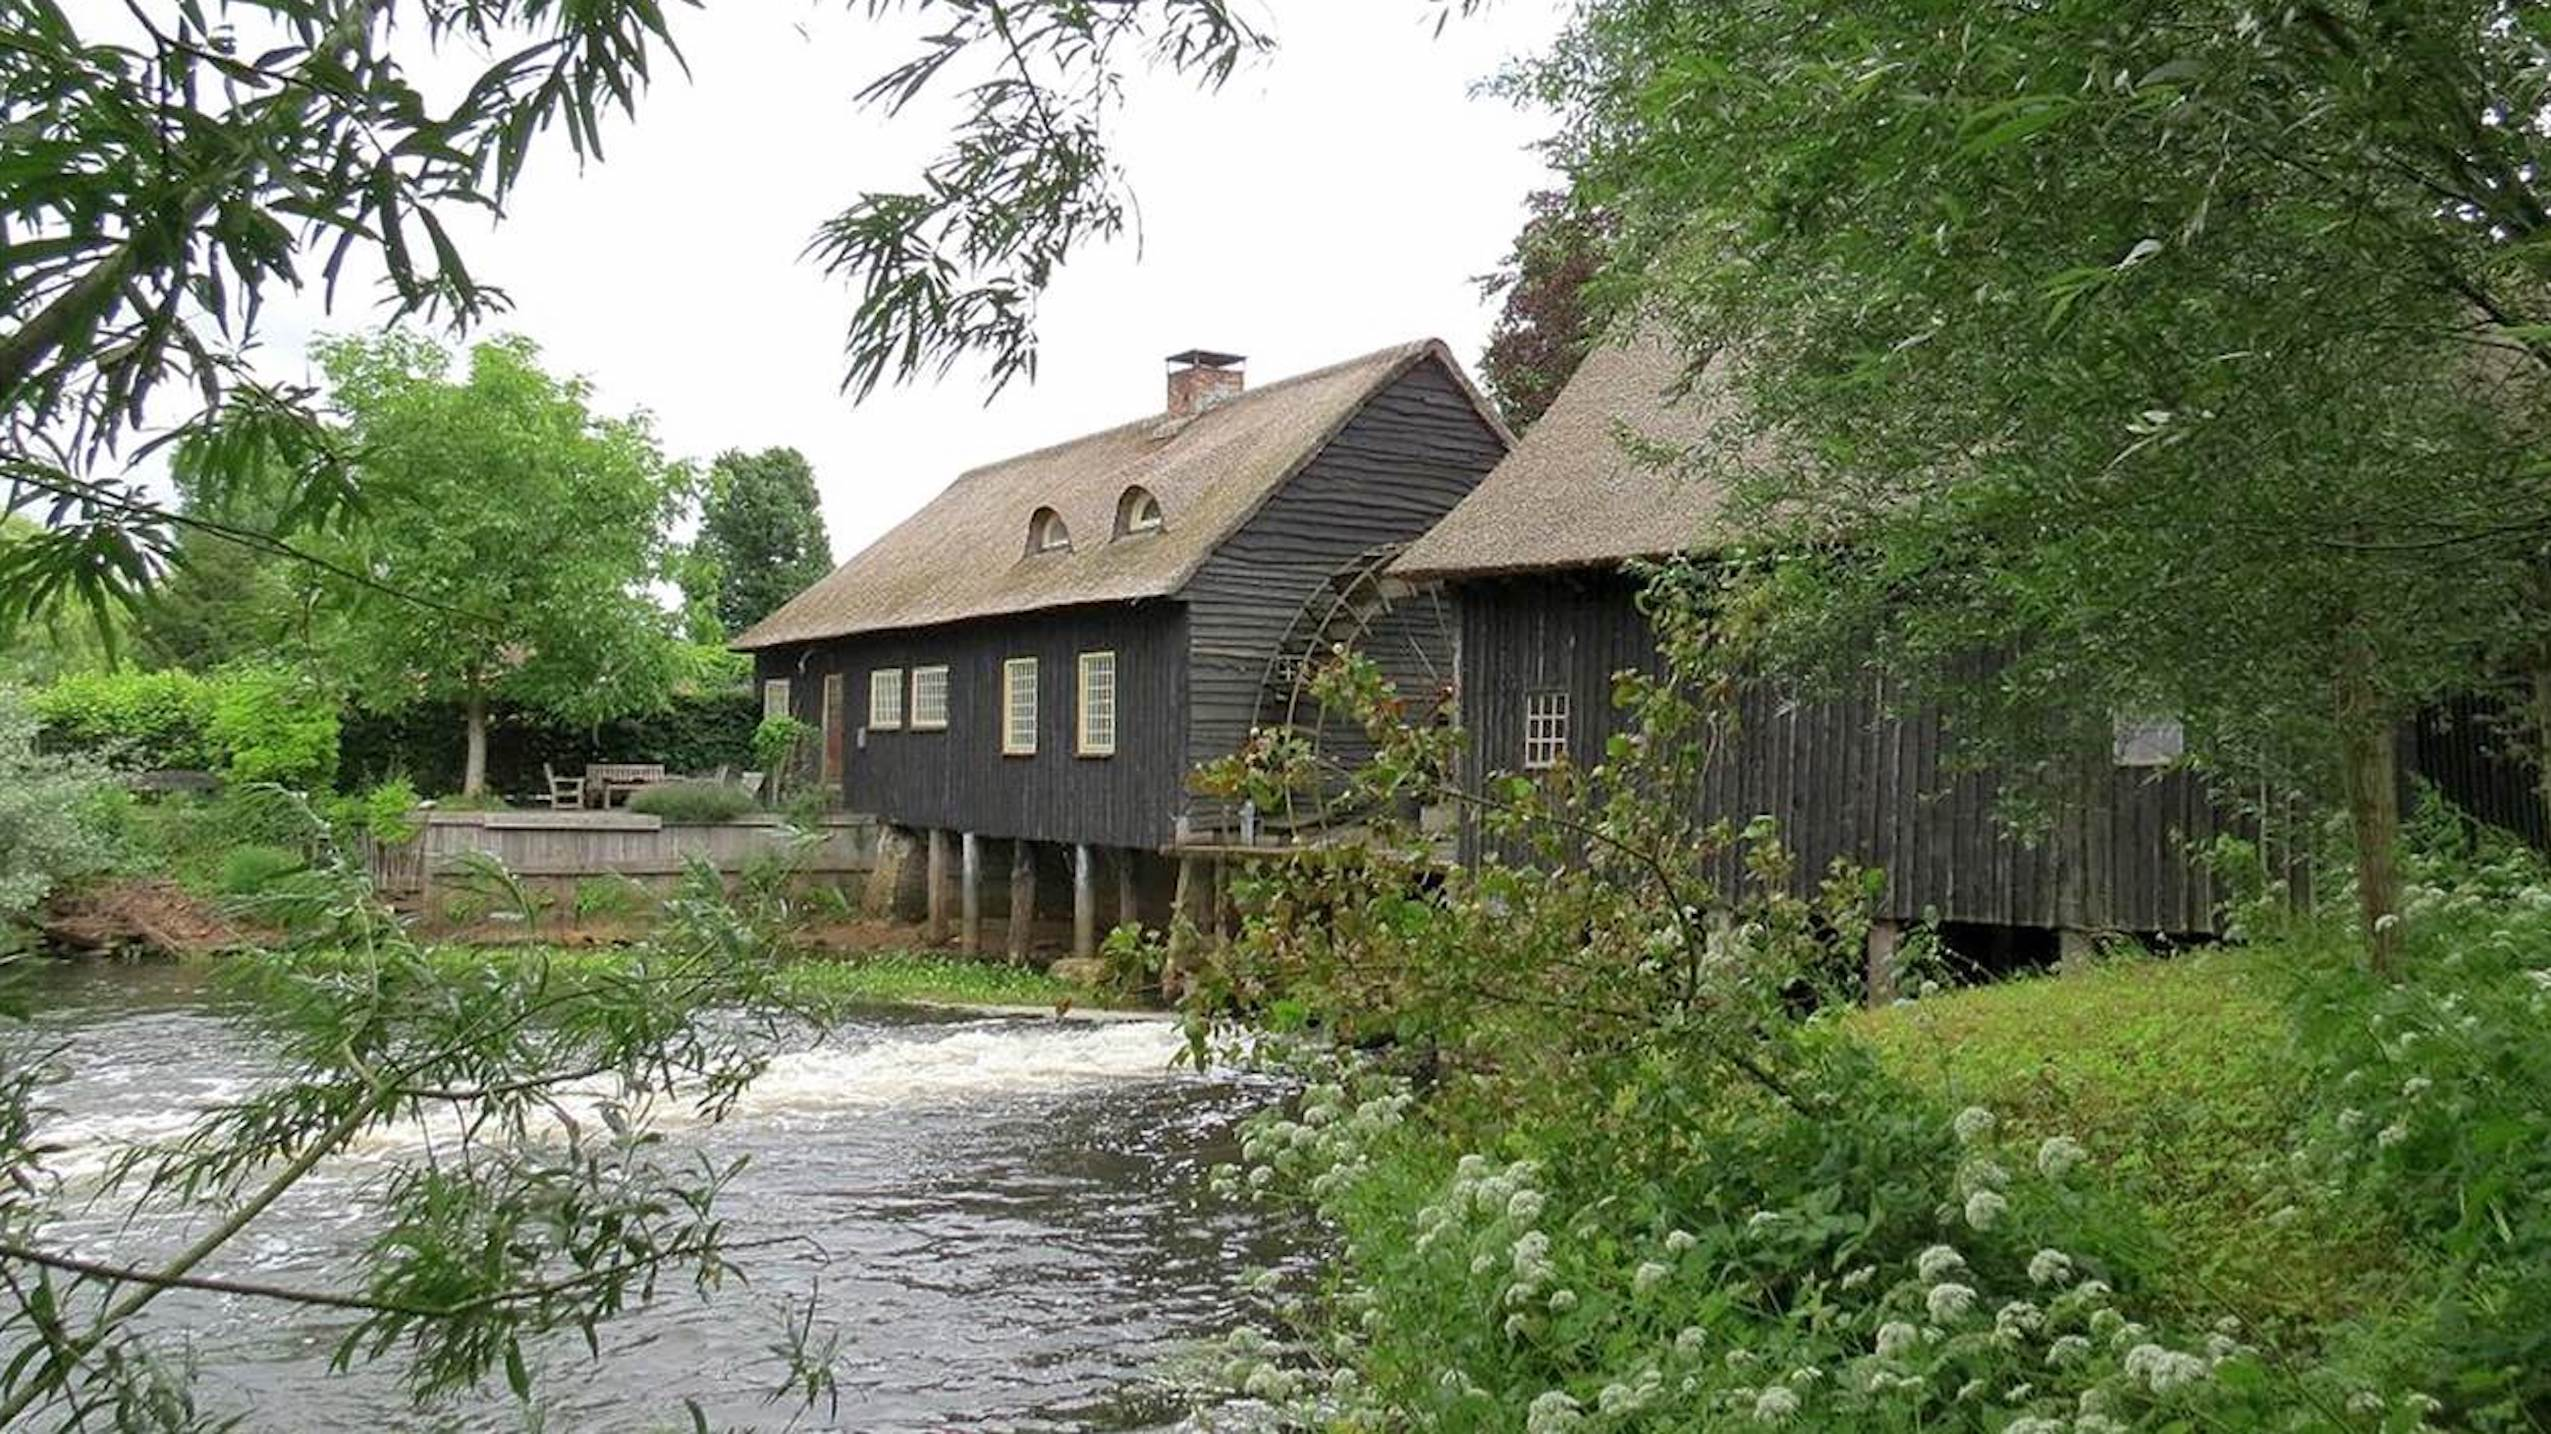 watermolen de dommel erfgoed deal